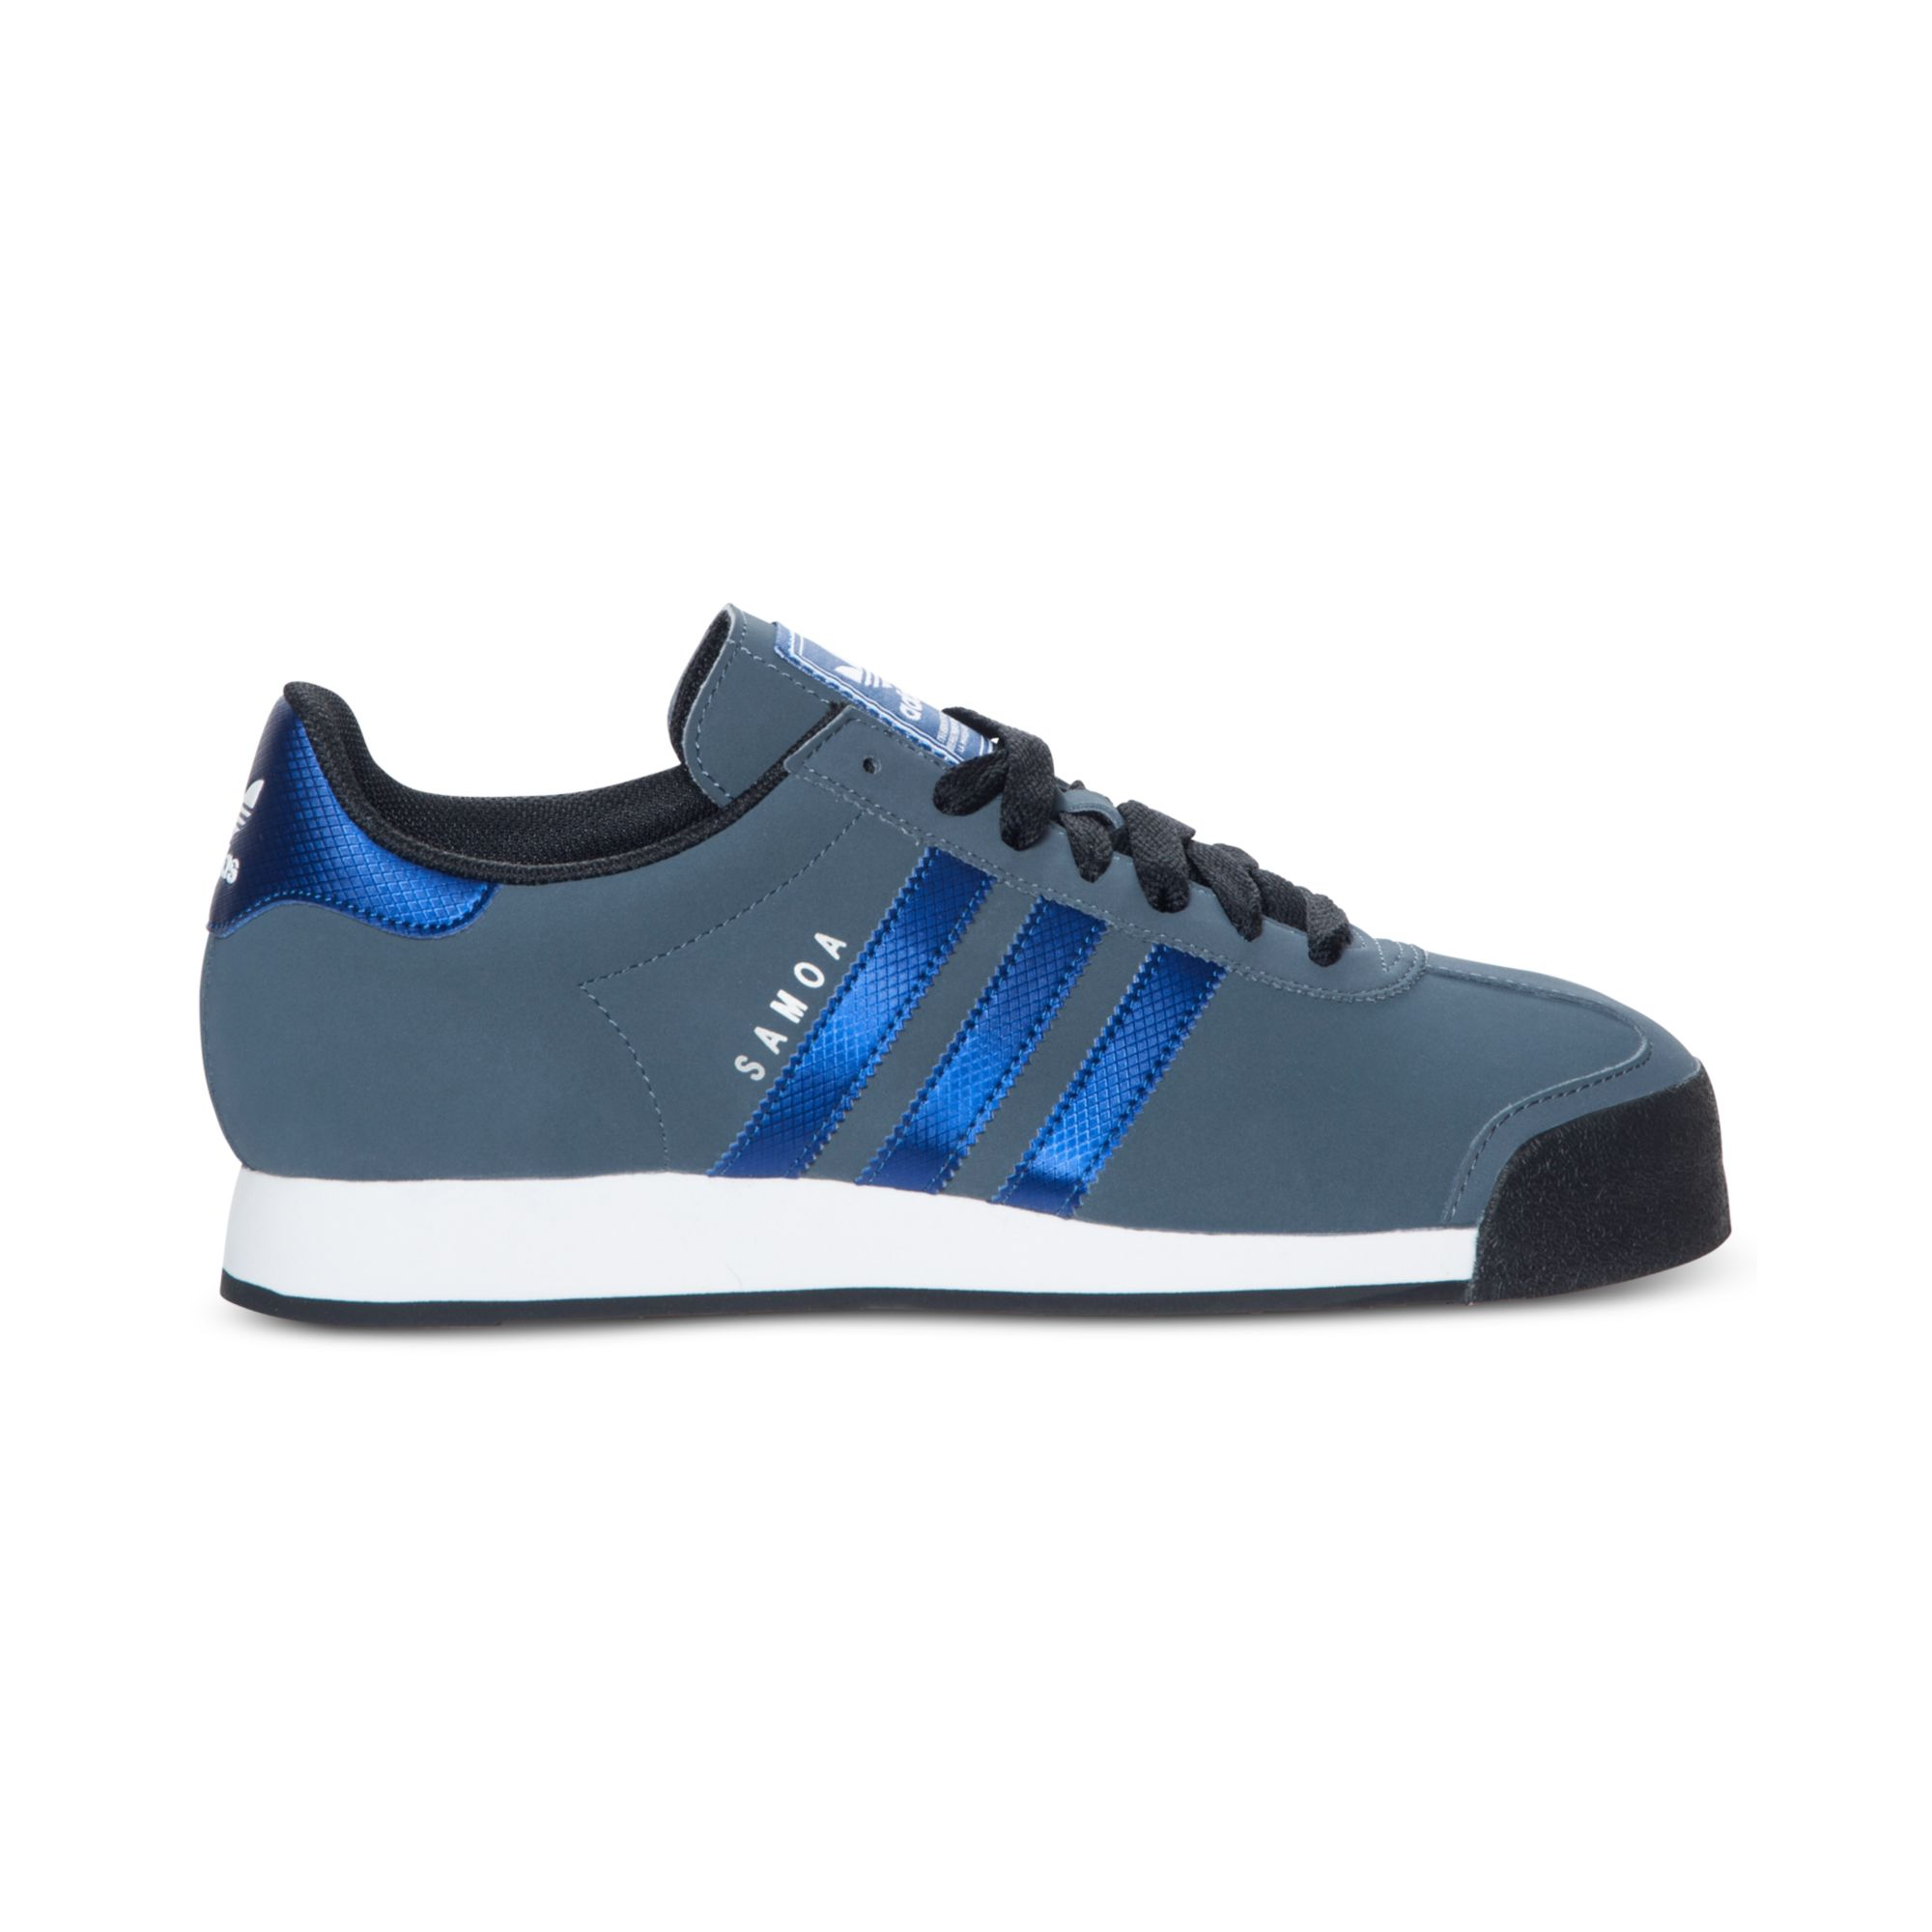 Lyst - Adidas Samoa Sneakers in Blue for Men